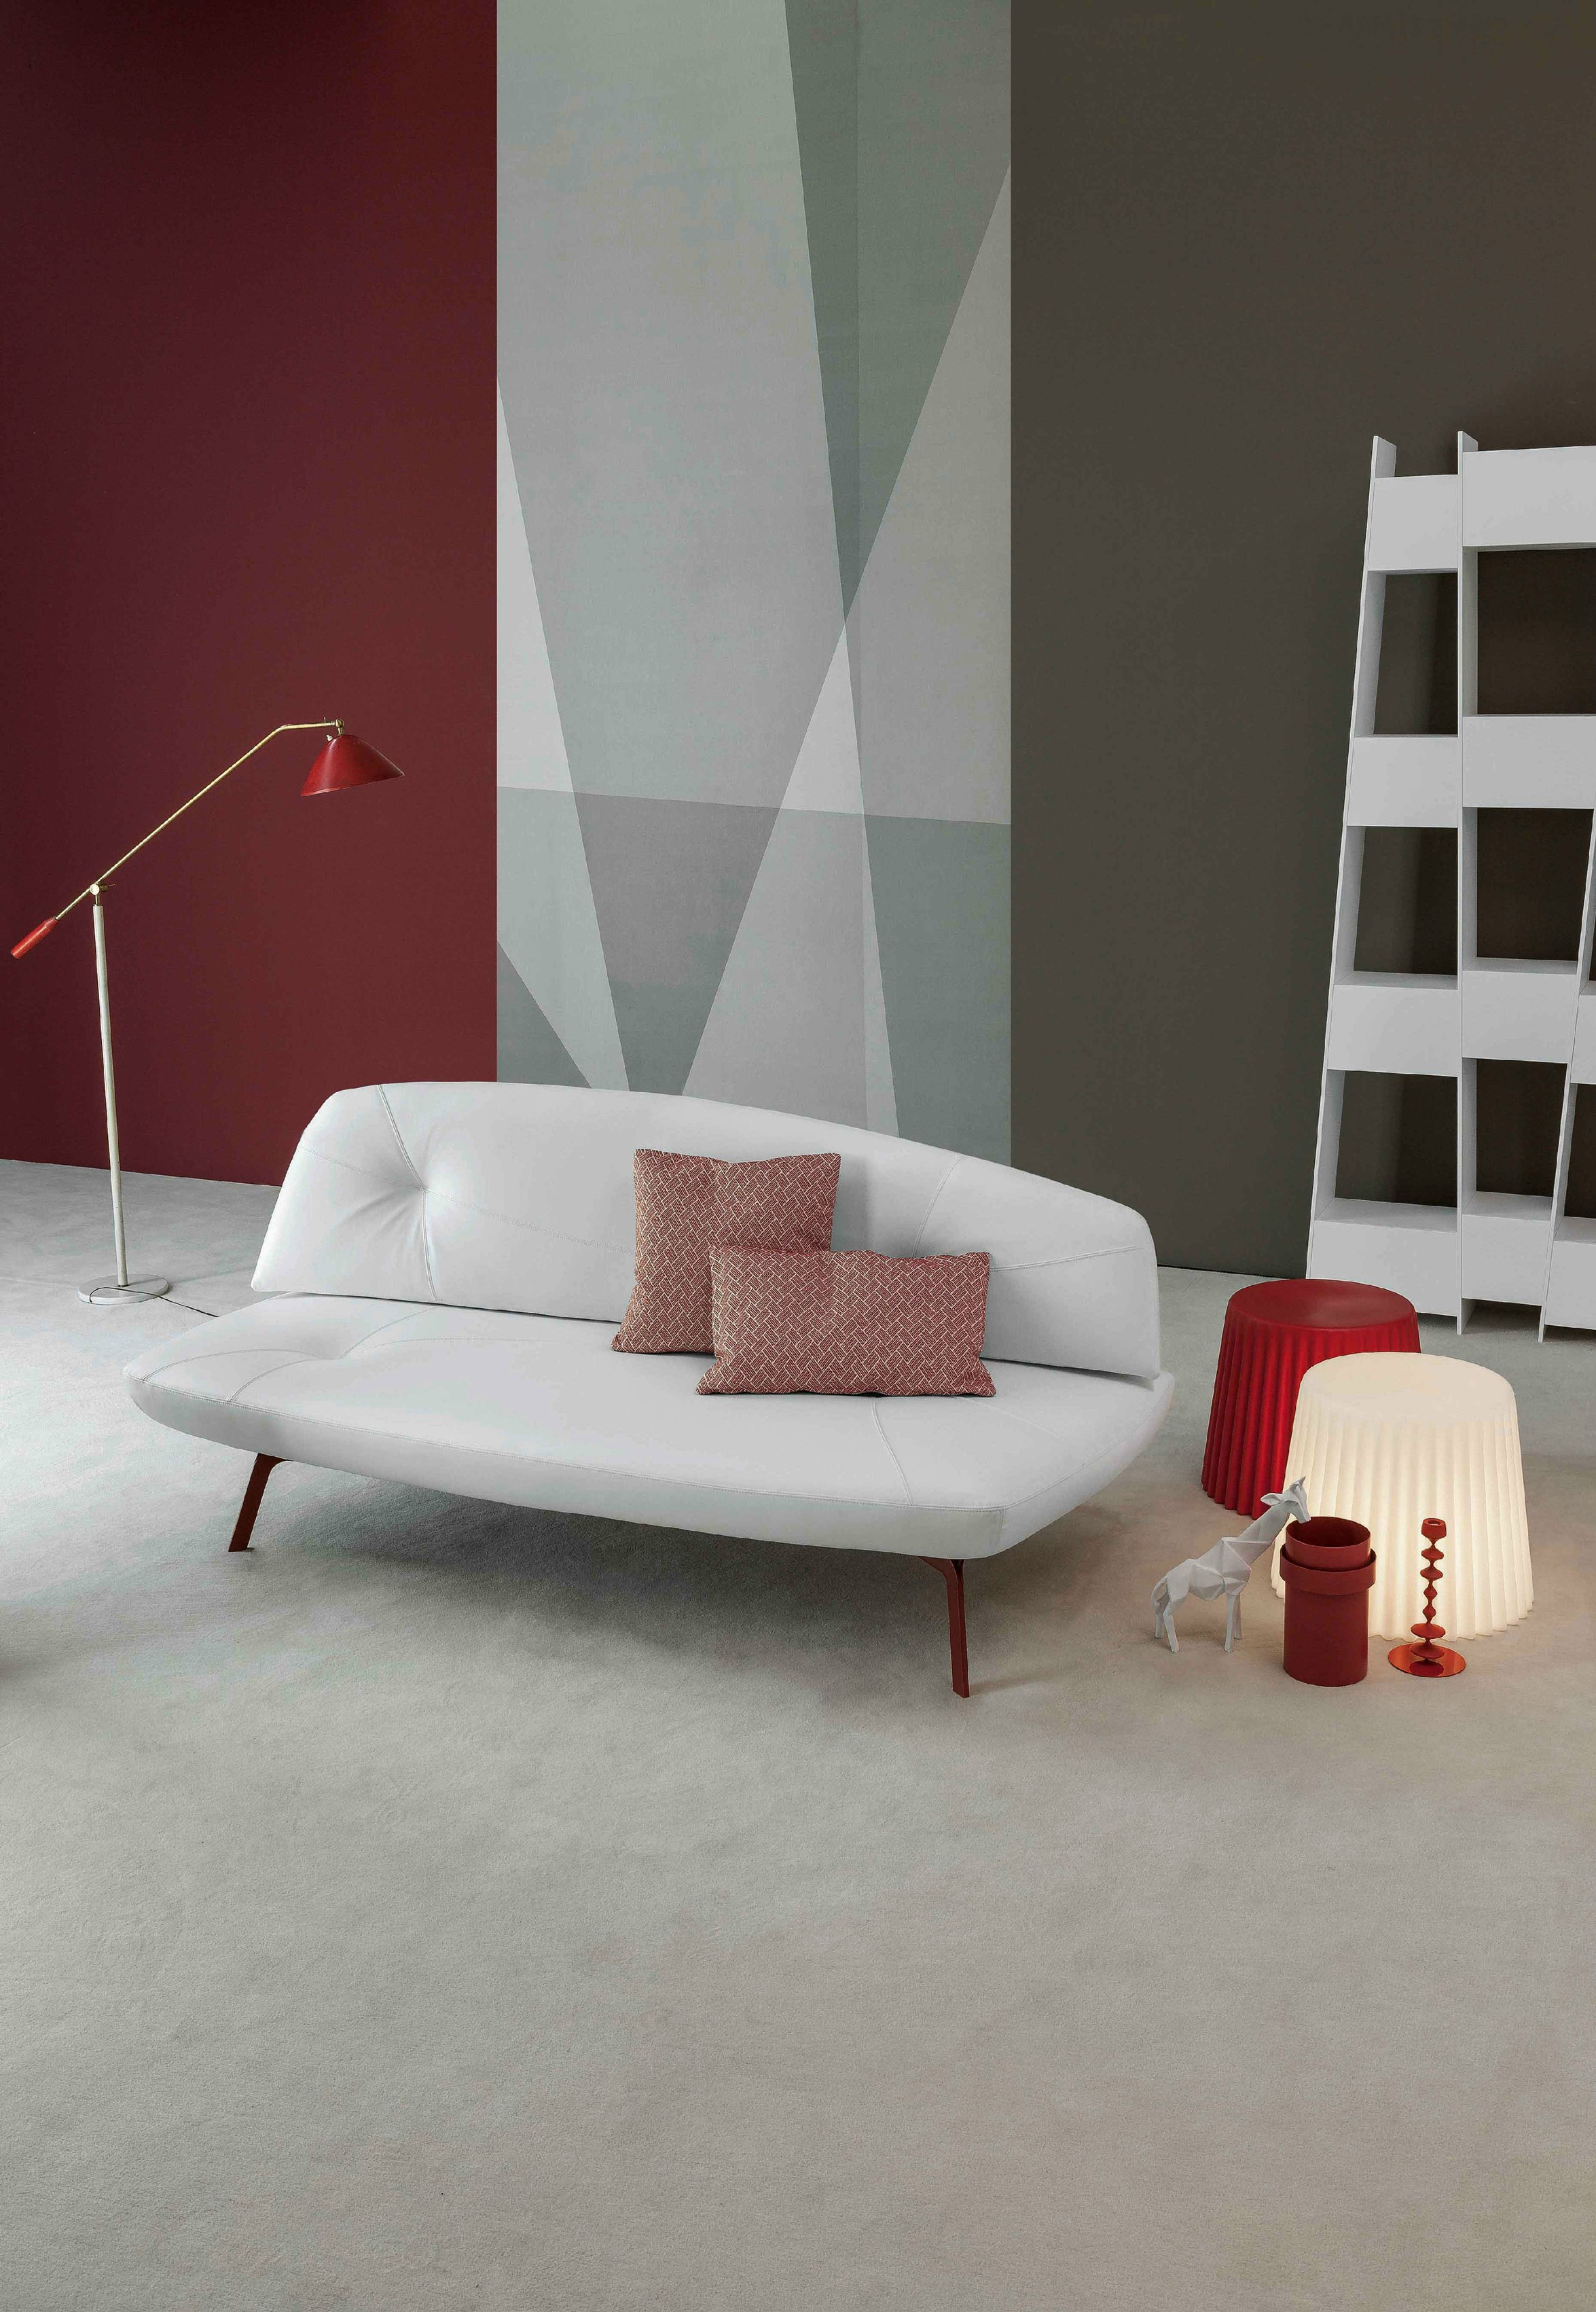 Canap Lit Convertible En Tissu Bandy By Bonaldo Design